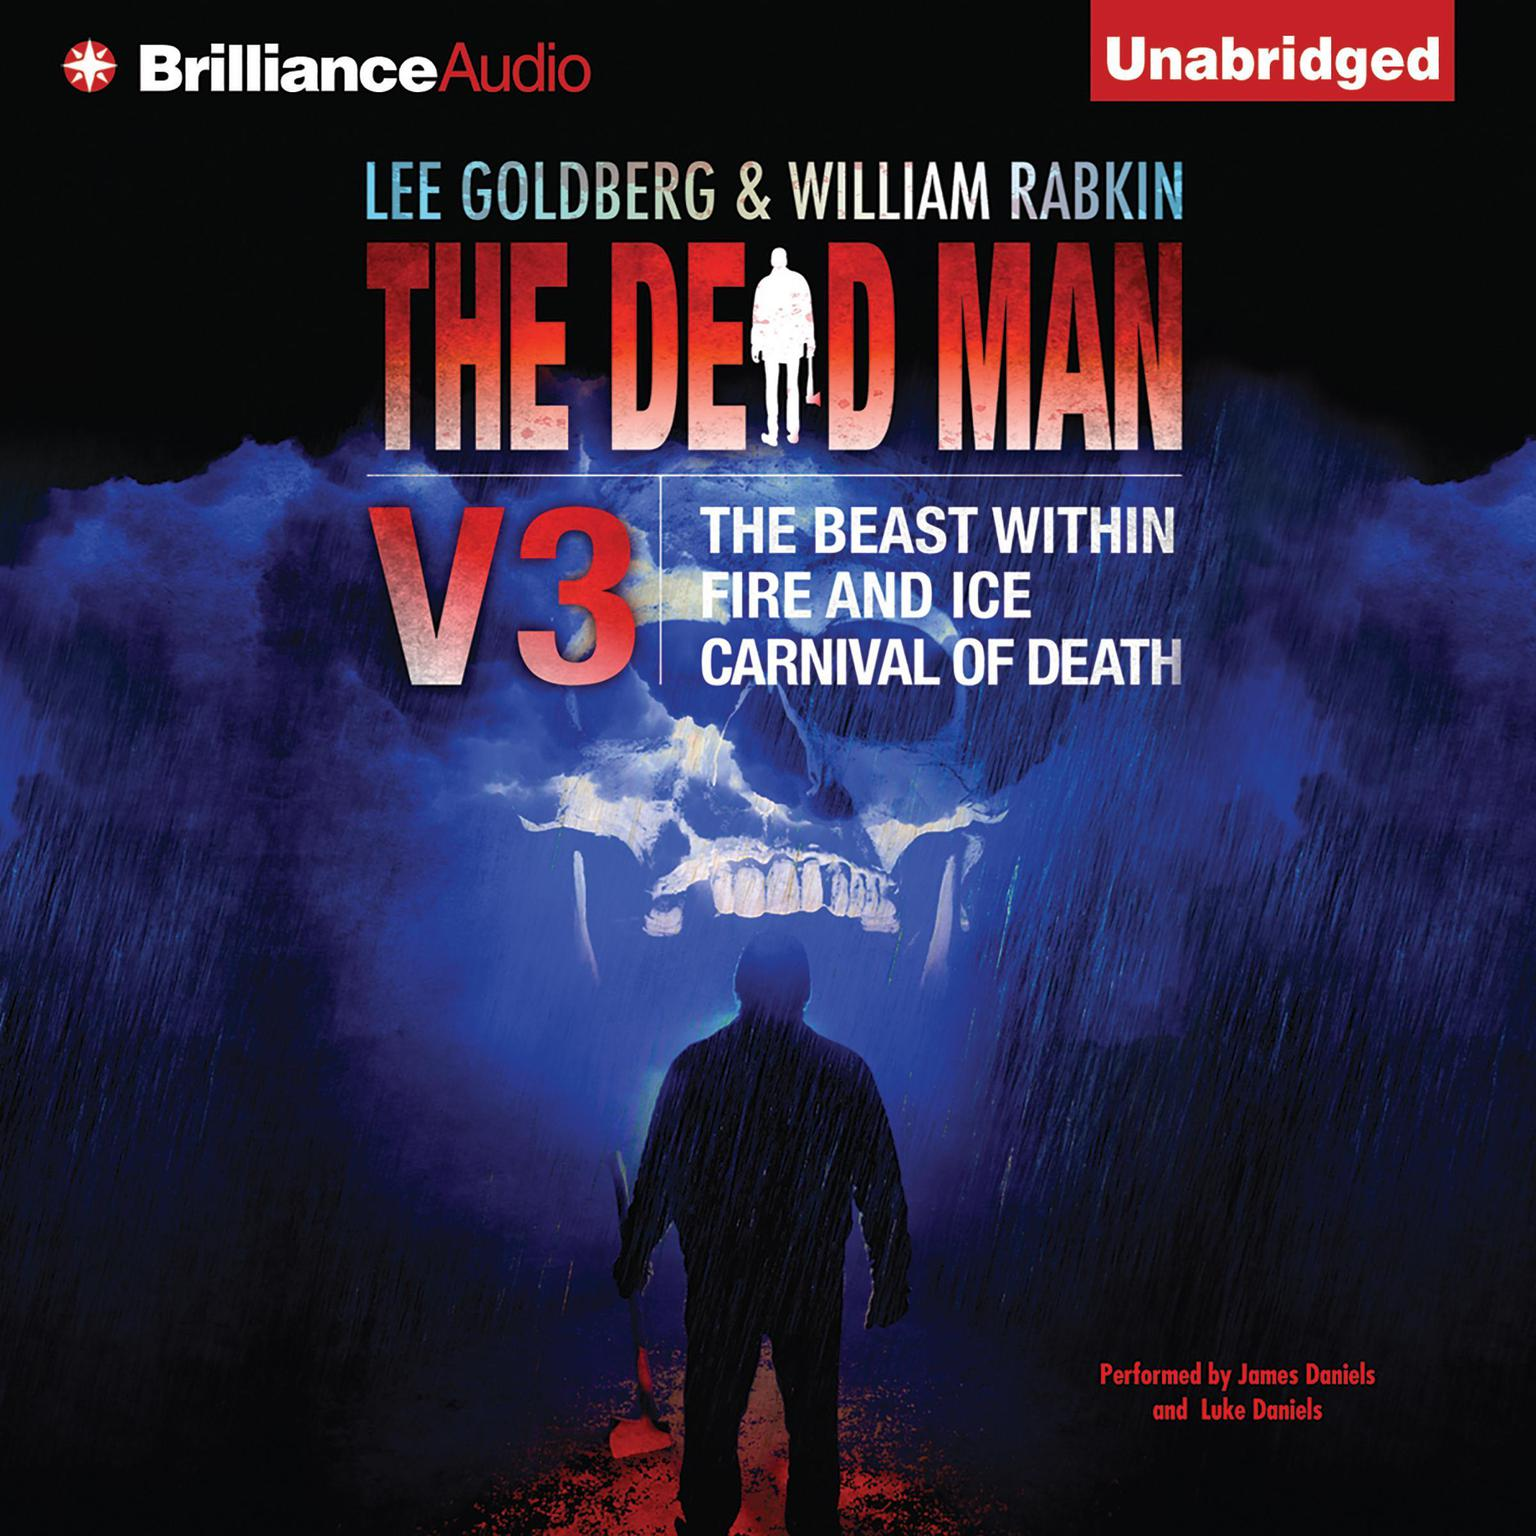 Printable The Dead Man Vol 3: The Beast Within, Fire & Ice, Carnival of Death Audiobook Cover Art